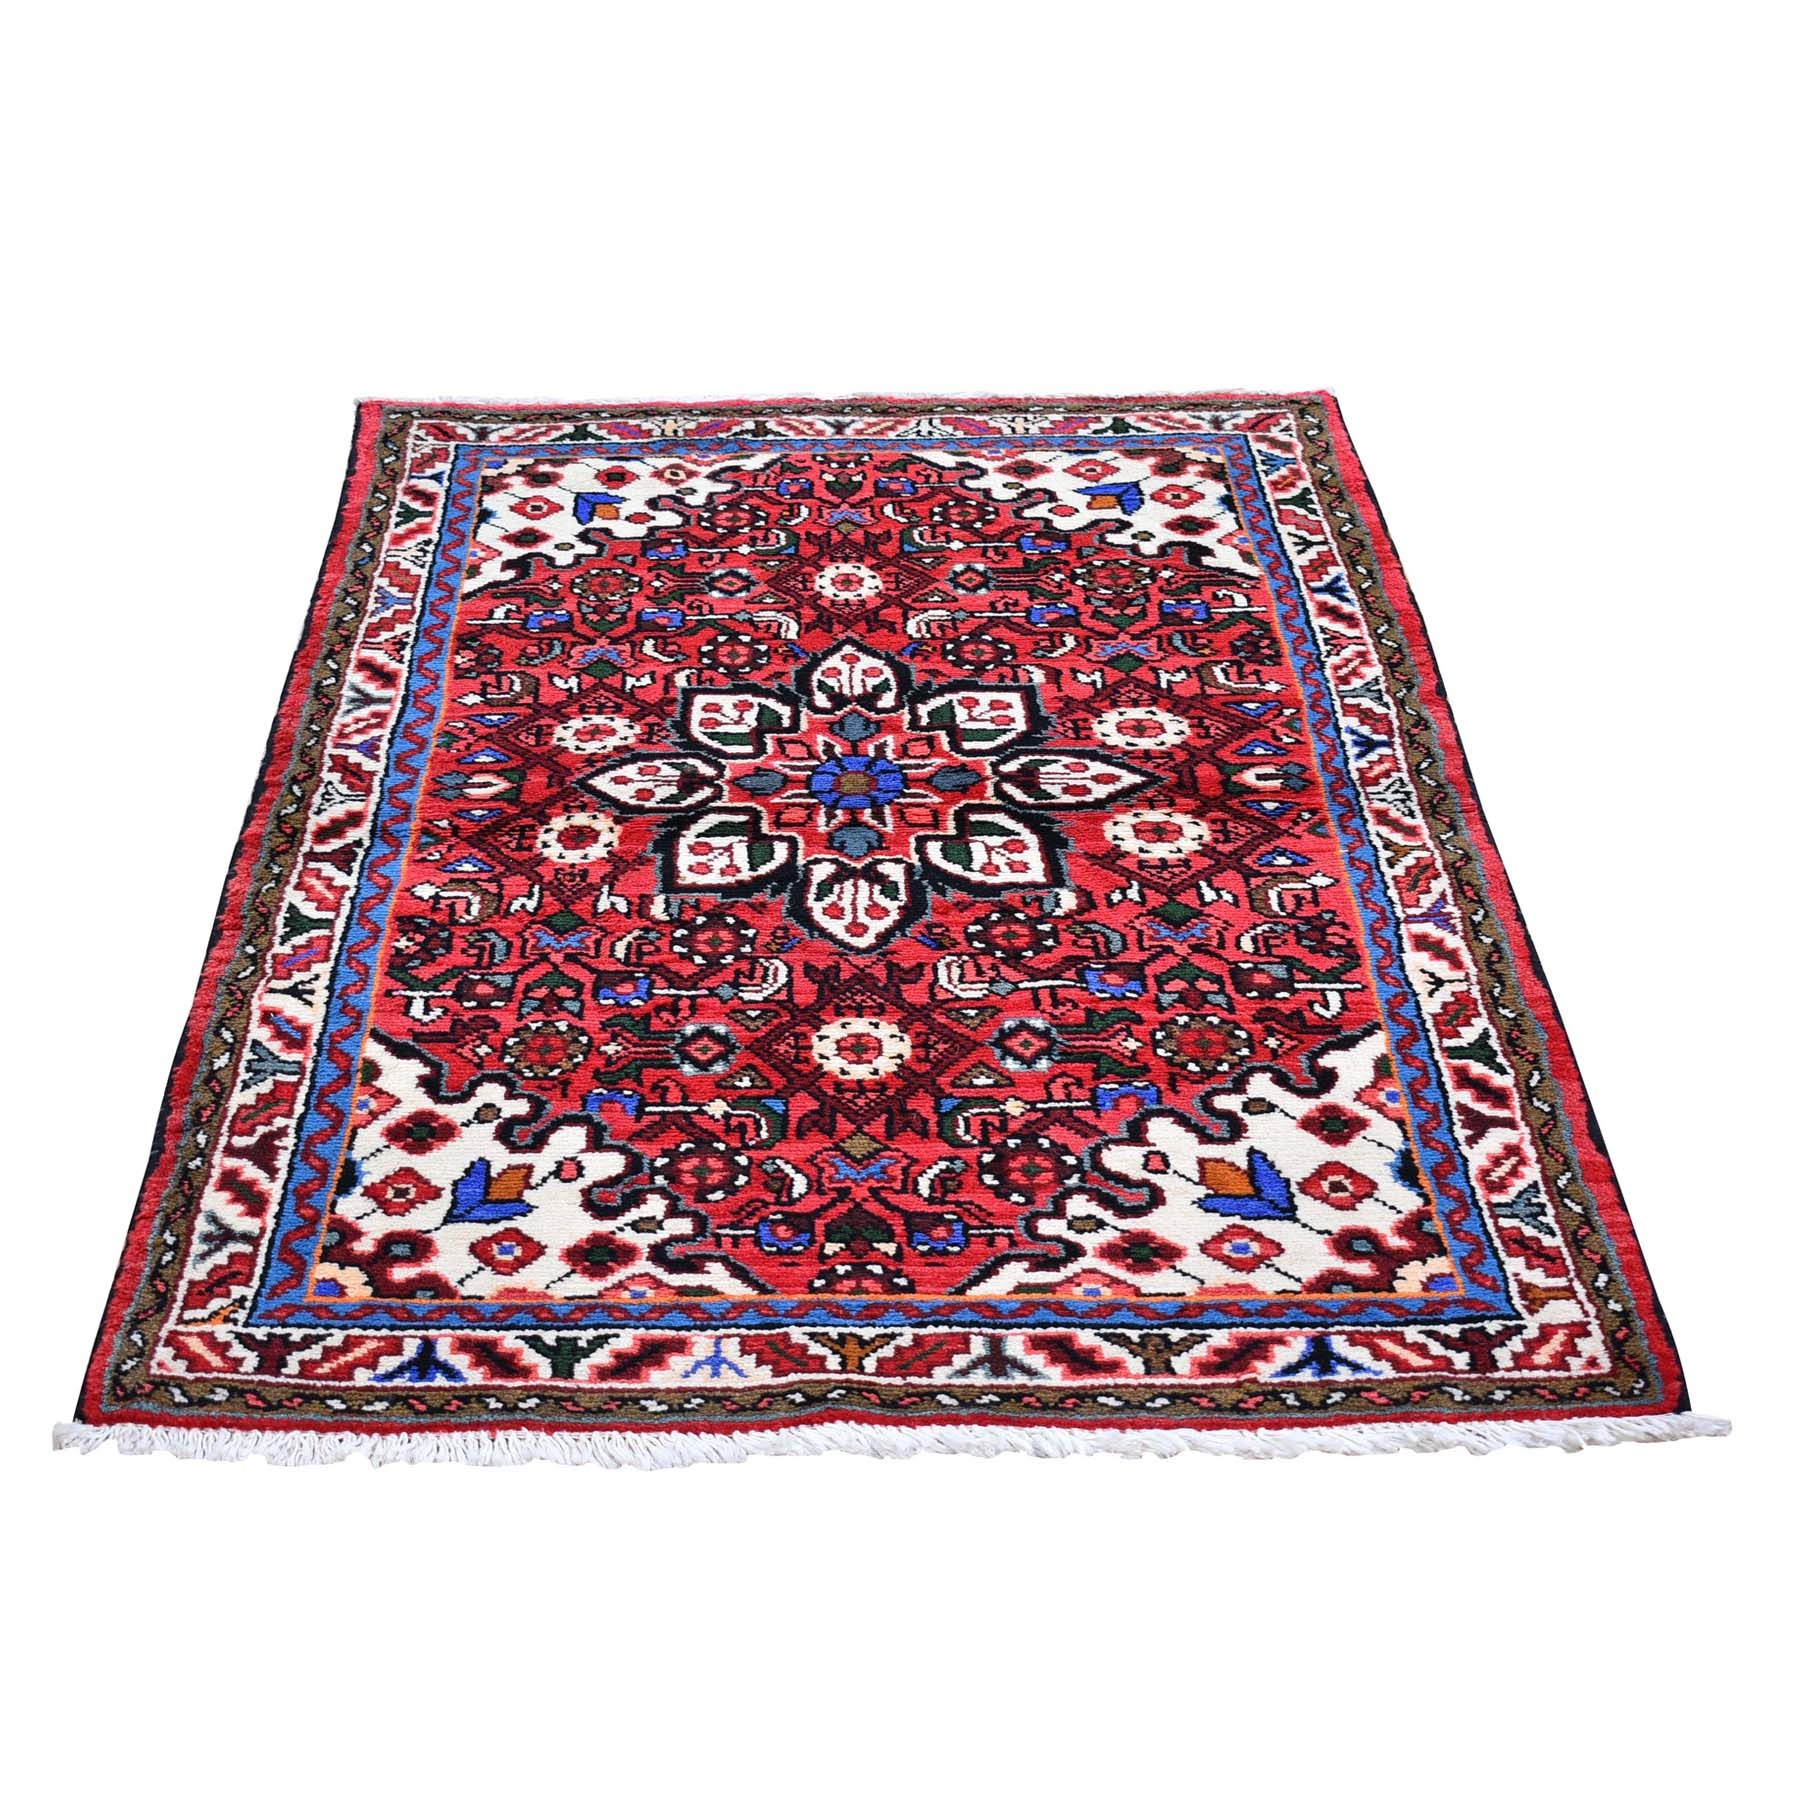 "3'6""x5'2"" Red Vintage Persian Hamadan Flower Medallion Organic Wool Hand Knotted Oriental Rug"